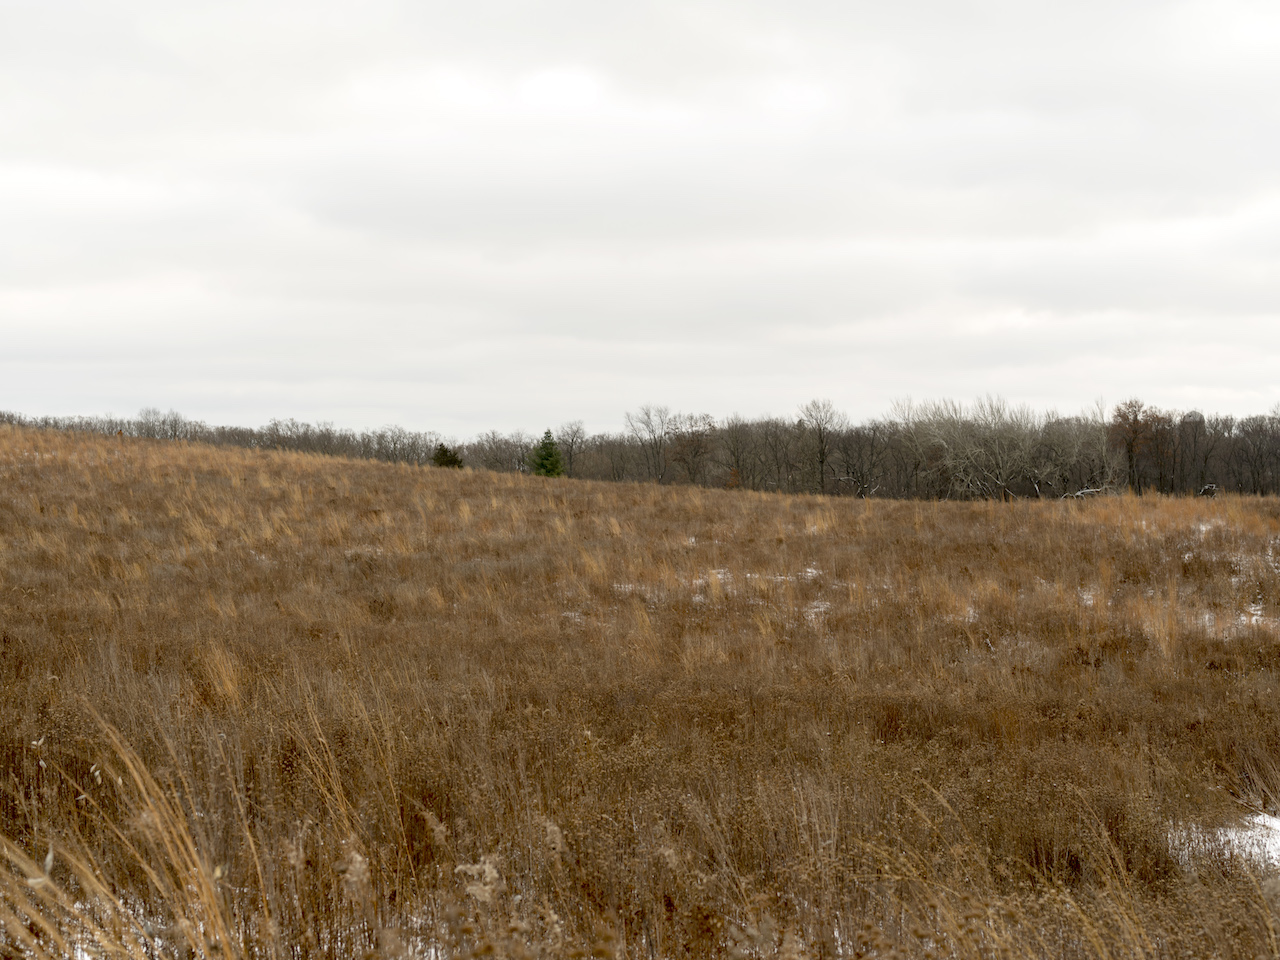 a field of dried and brown grasses, with seeds still attached on a gray day